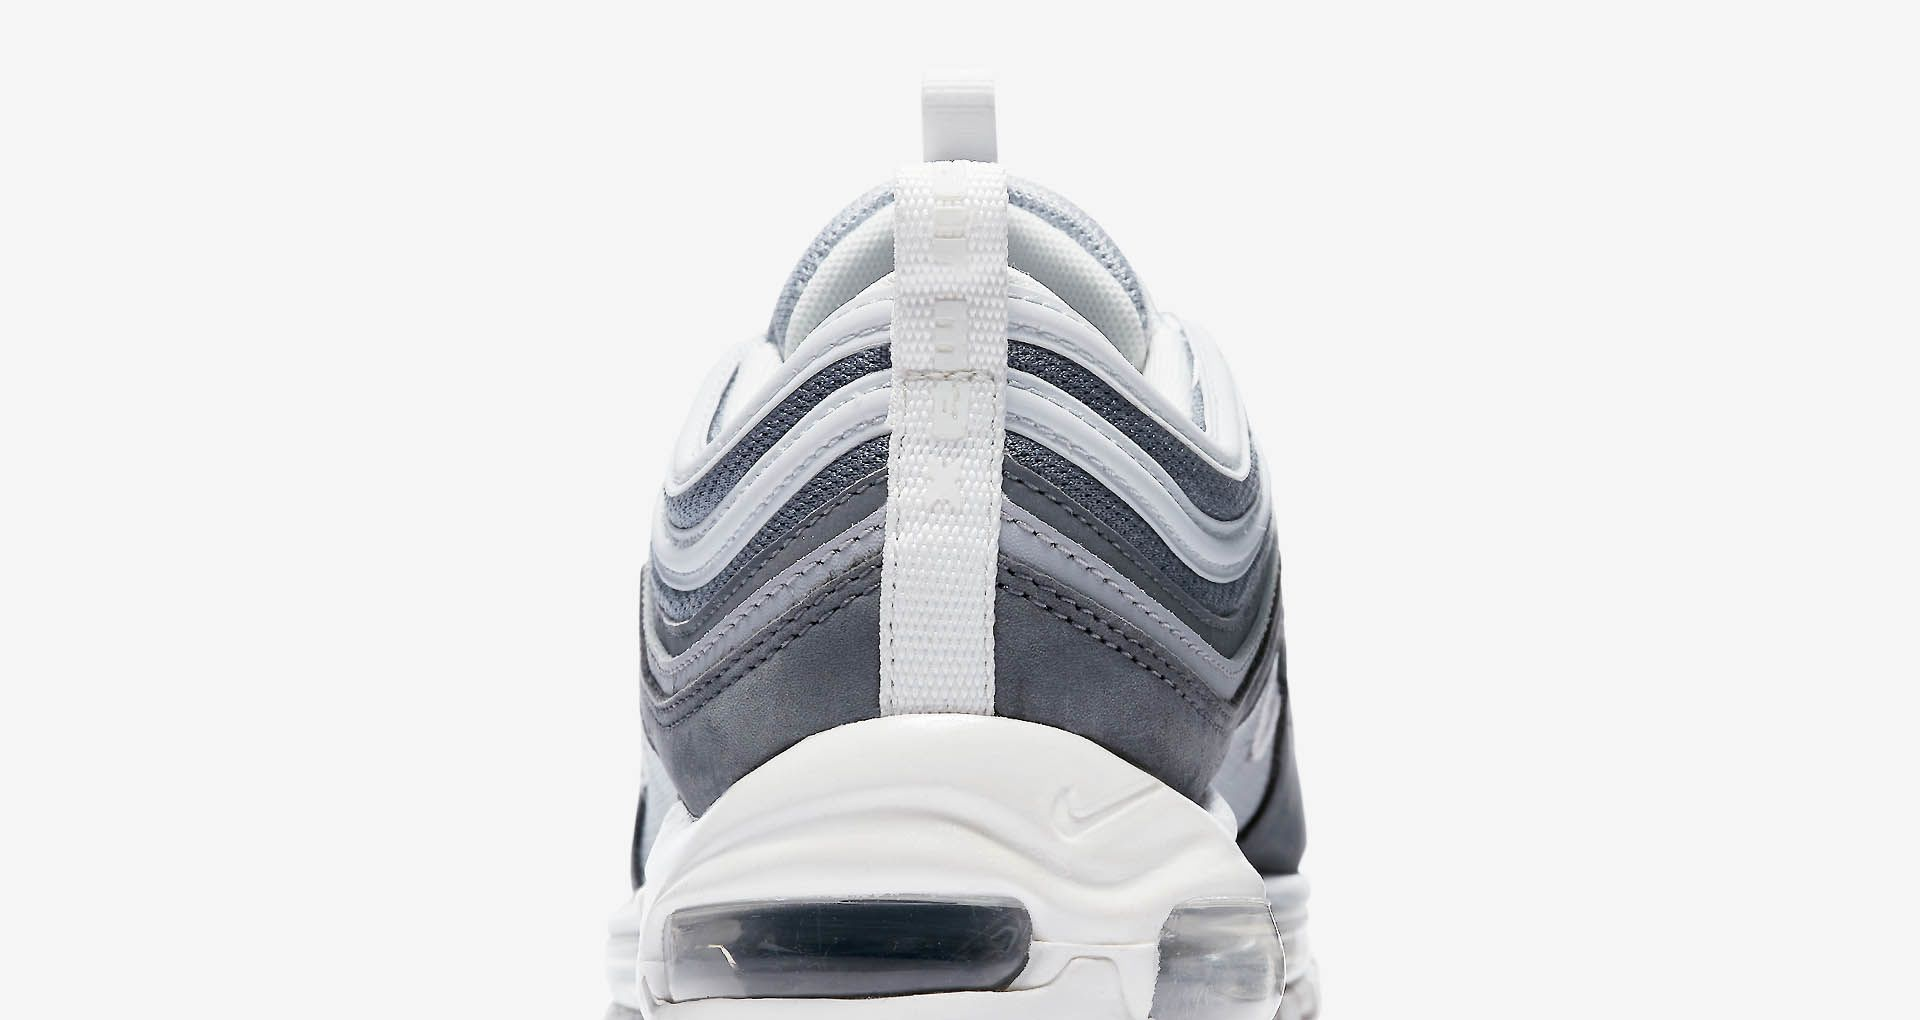 Nike Air Max 97 Premium 'Wolf Grey & Cool Grey' Release Date